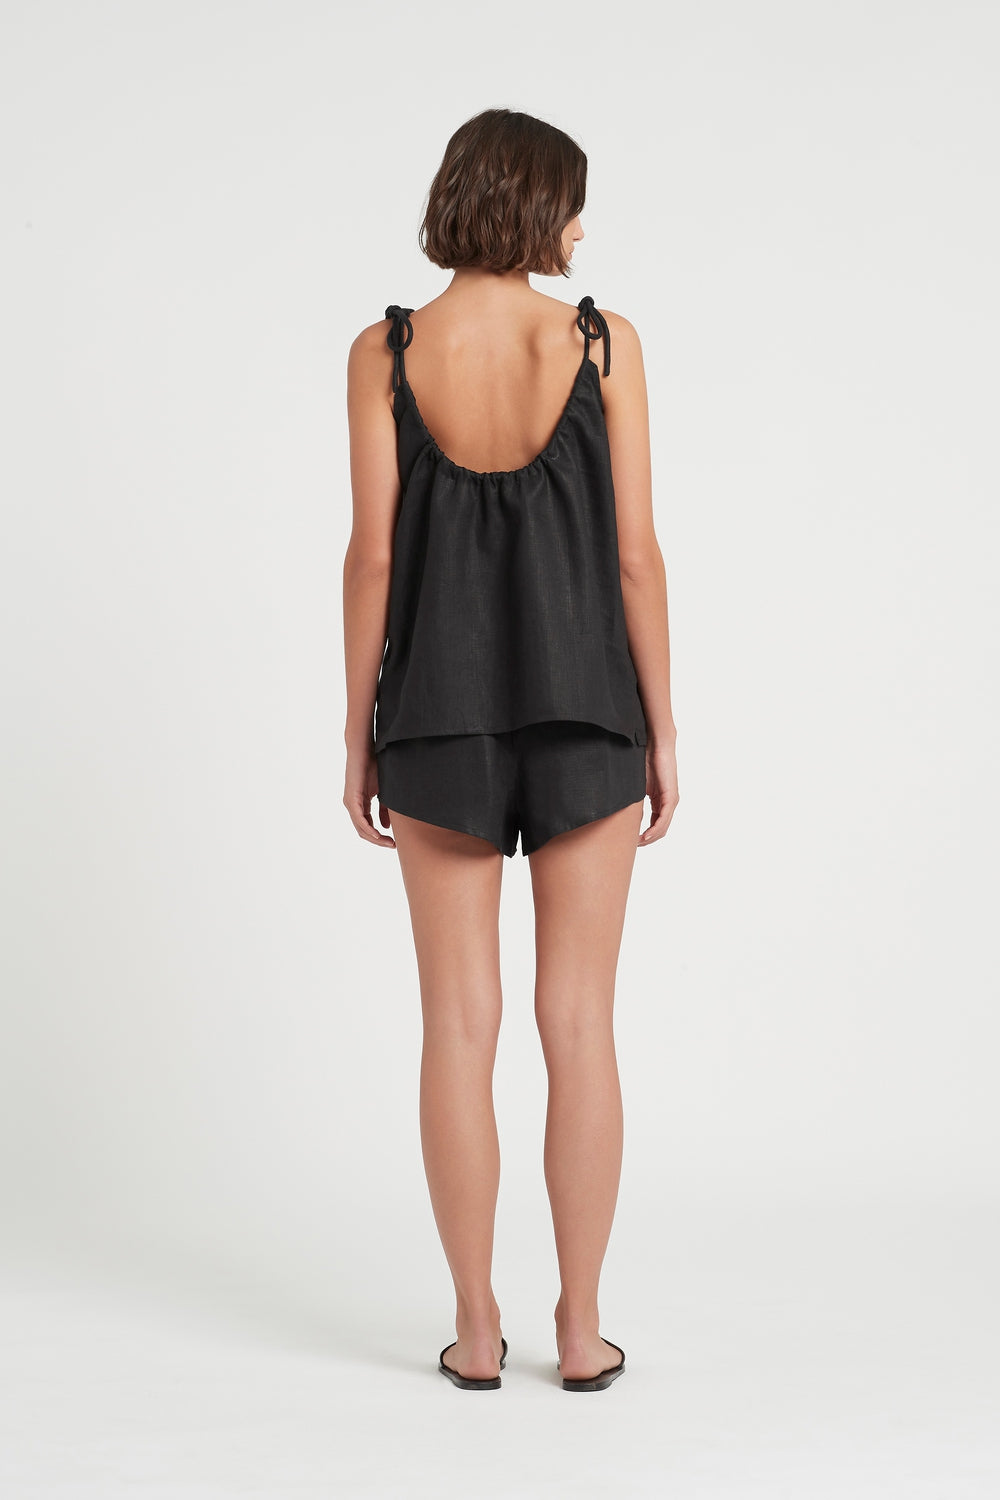 SIR the label LILA TIE TOP BLACK